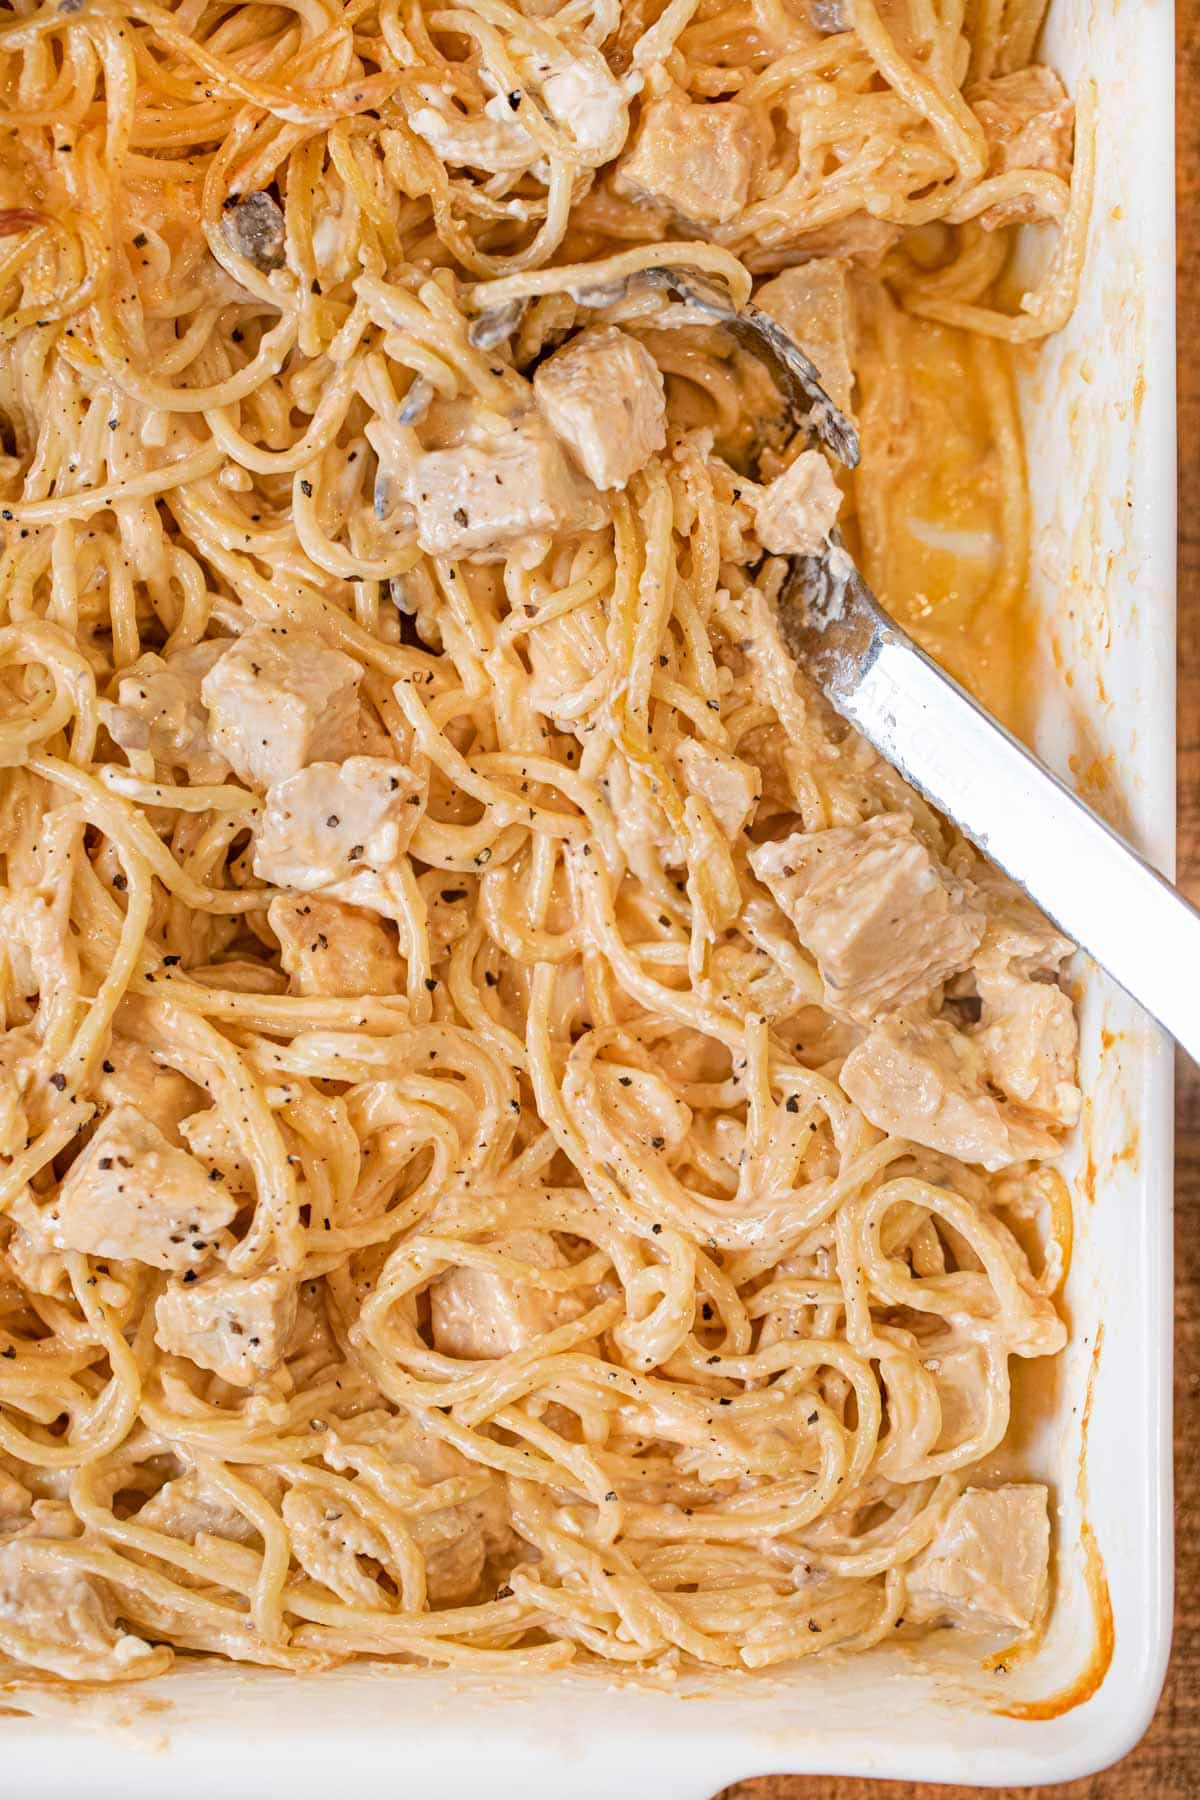 Baked Chicken Spaghetti in baking pan with spoon